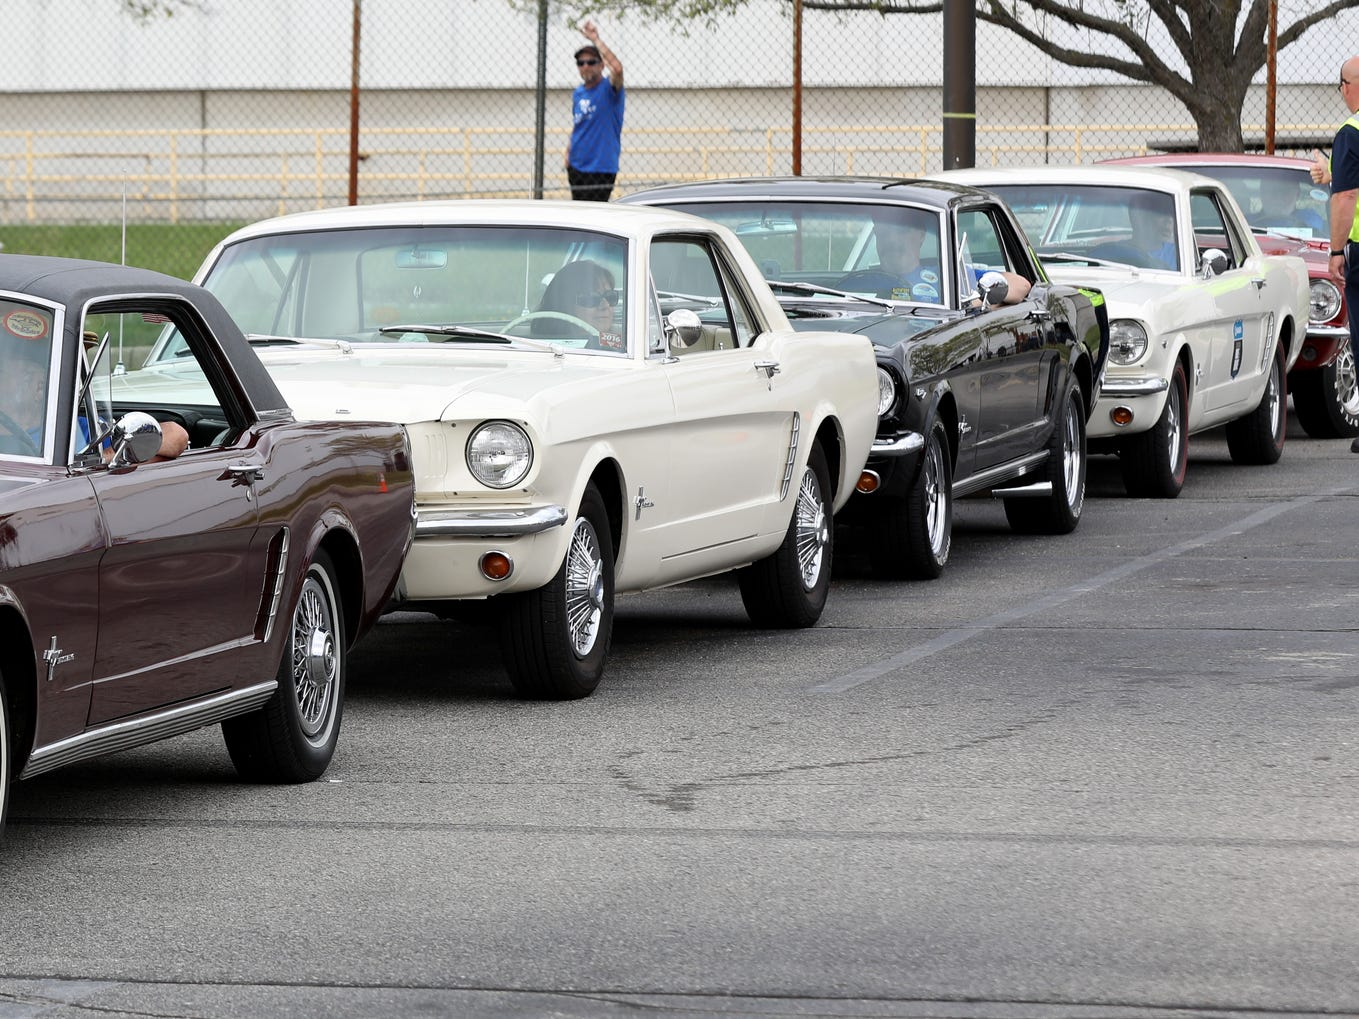 Hexbyte - Science and Tech Ford Mustangs from the 1960s line up during the celebration of the 10 millionth Mustang at the Ford Flat Rock assembly plant on Wednesday, Aug. 8, 2018.